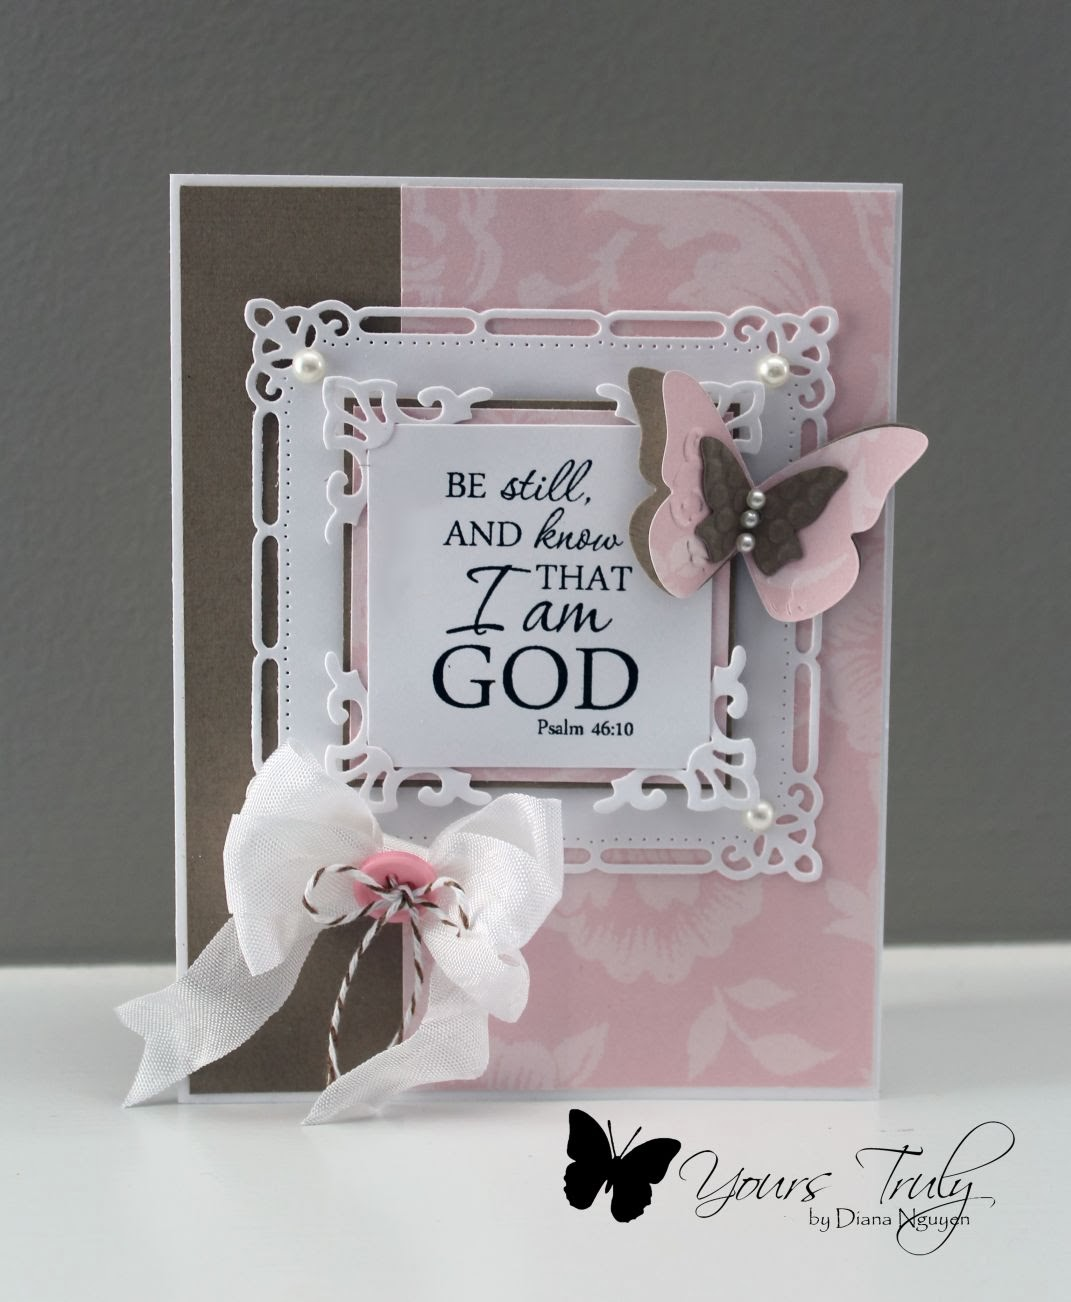 Diana Nguyen, Verve, Cards with Scripture